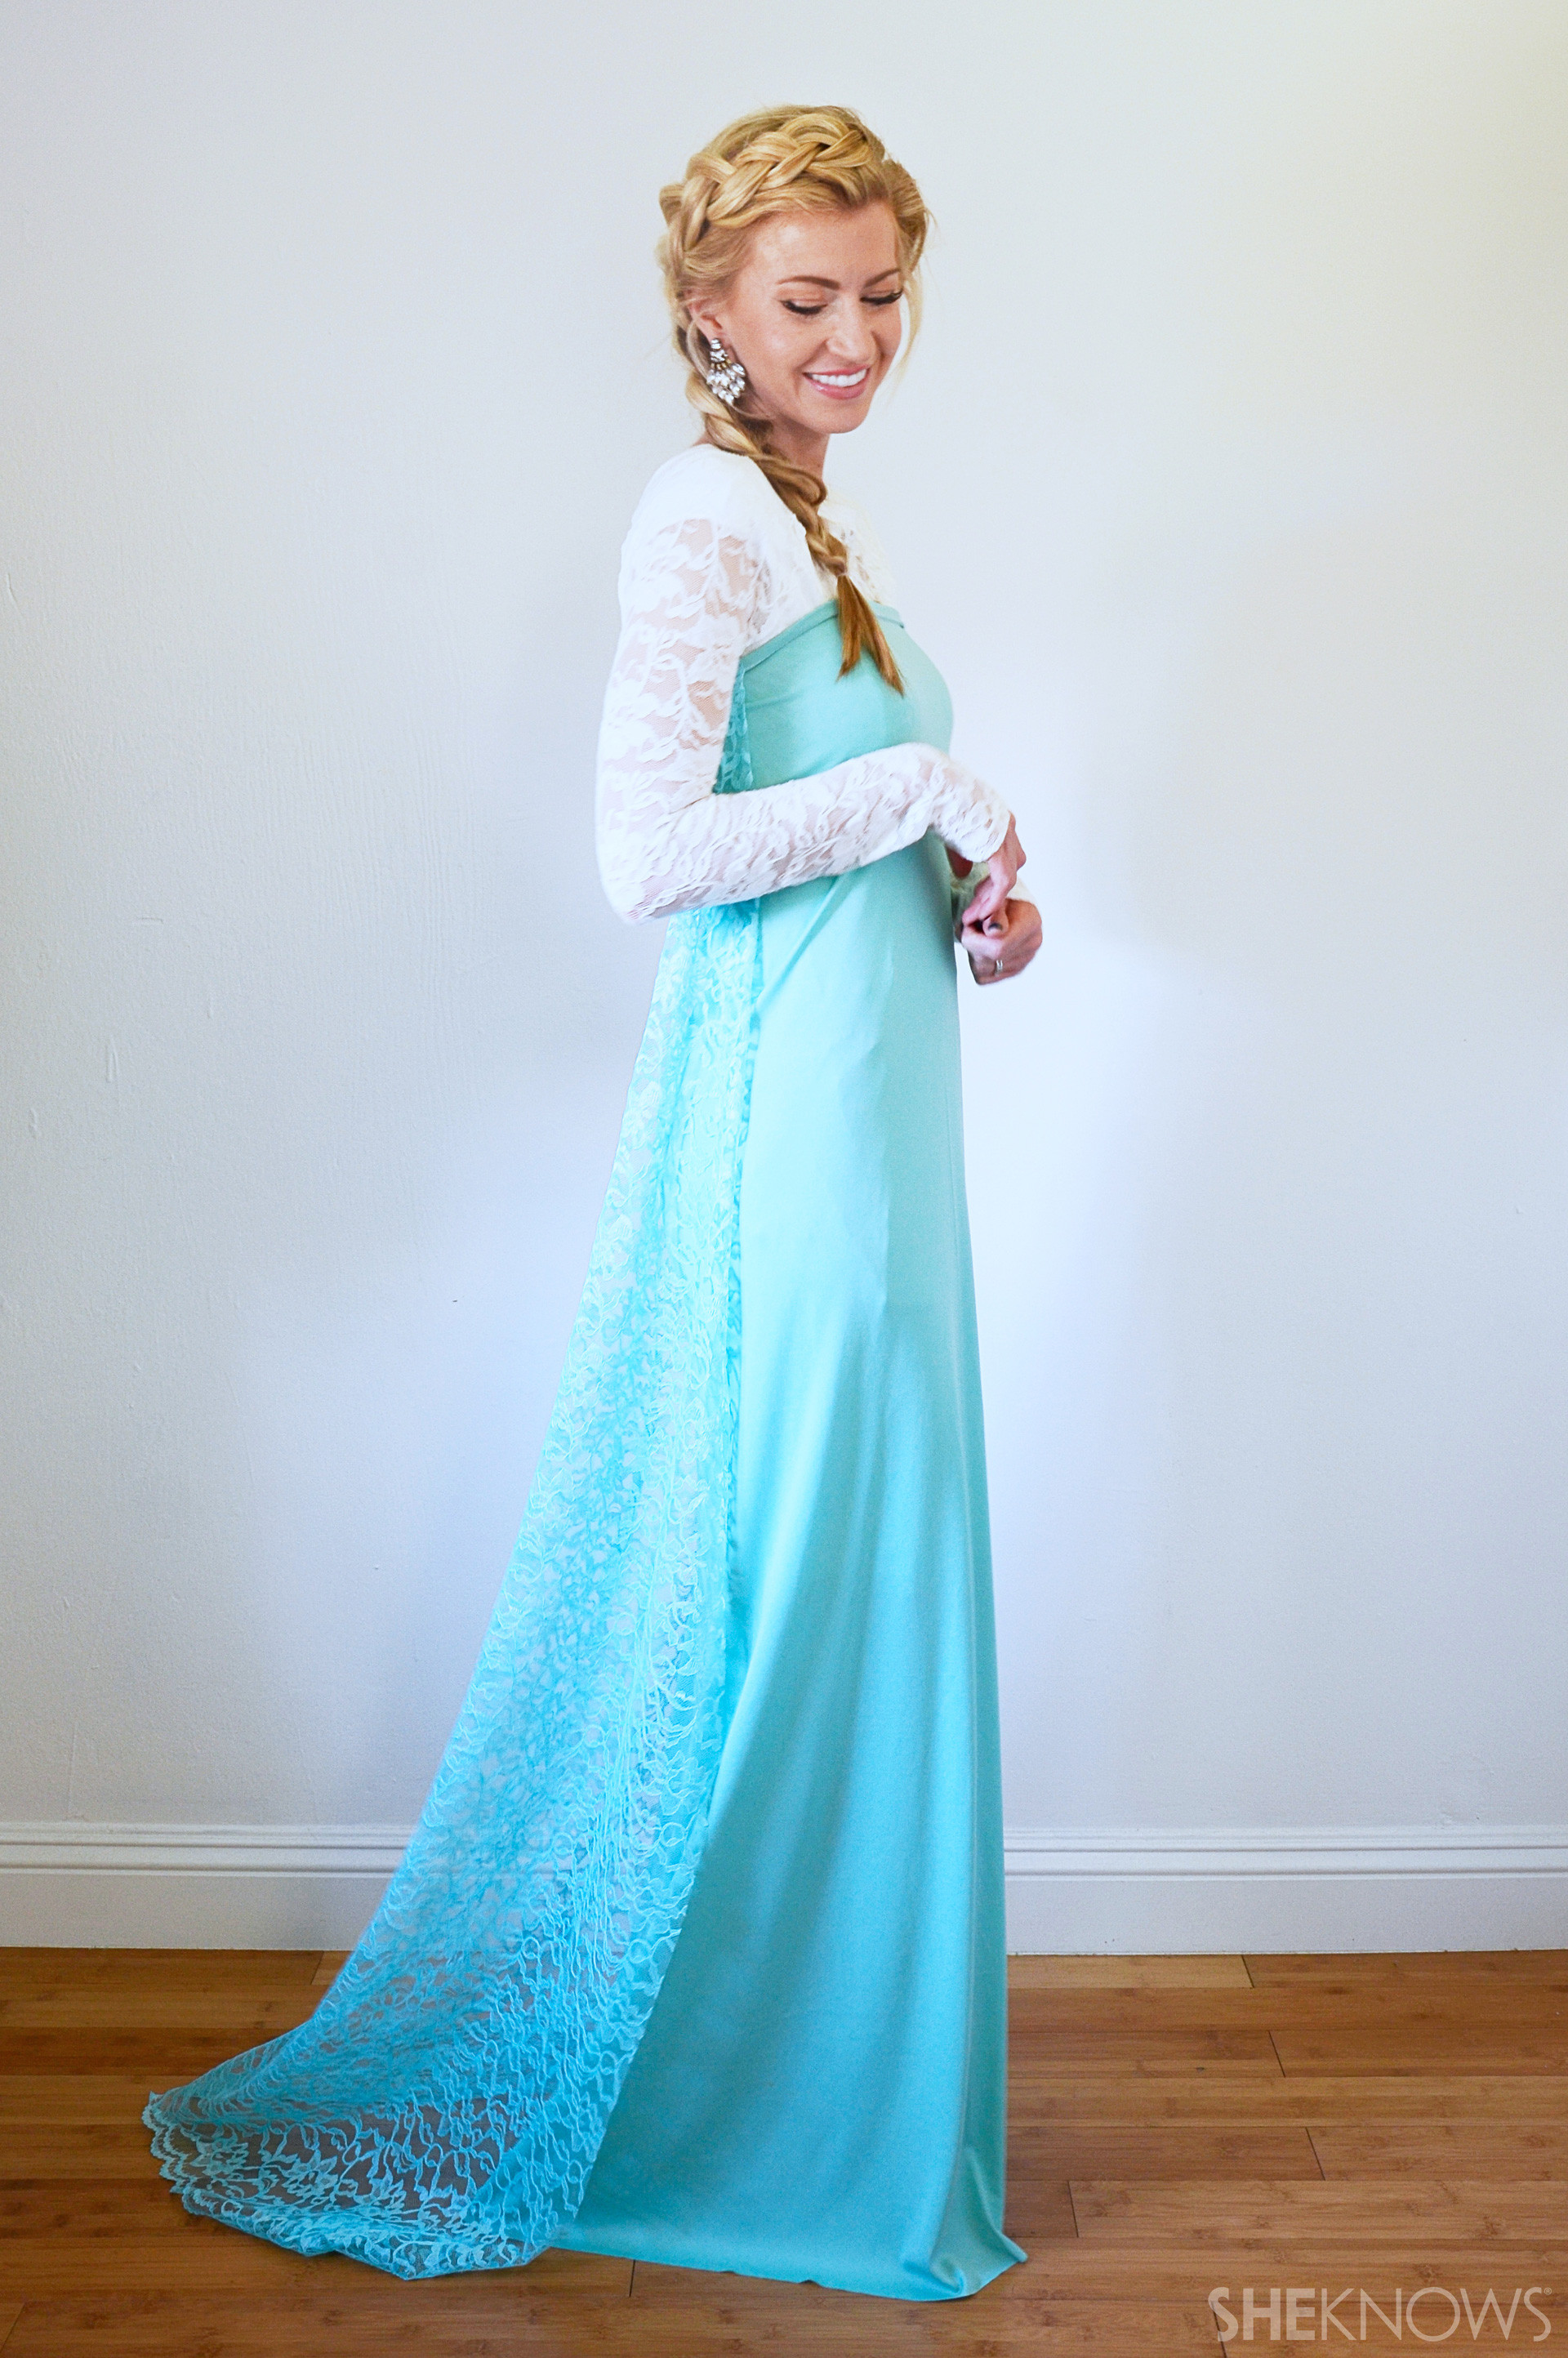 Best ideas about DIY Princess Costume . Save or Pin 3 Easy DIY Disney Princess Costumes — Because You re Now.